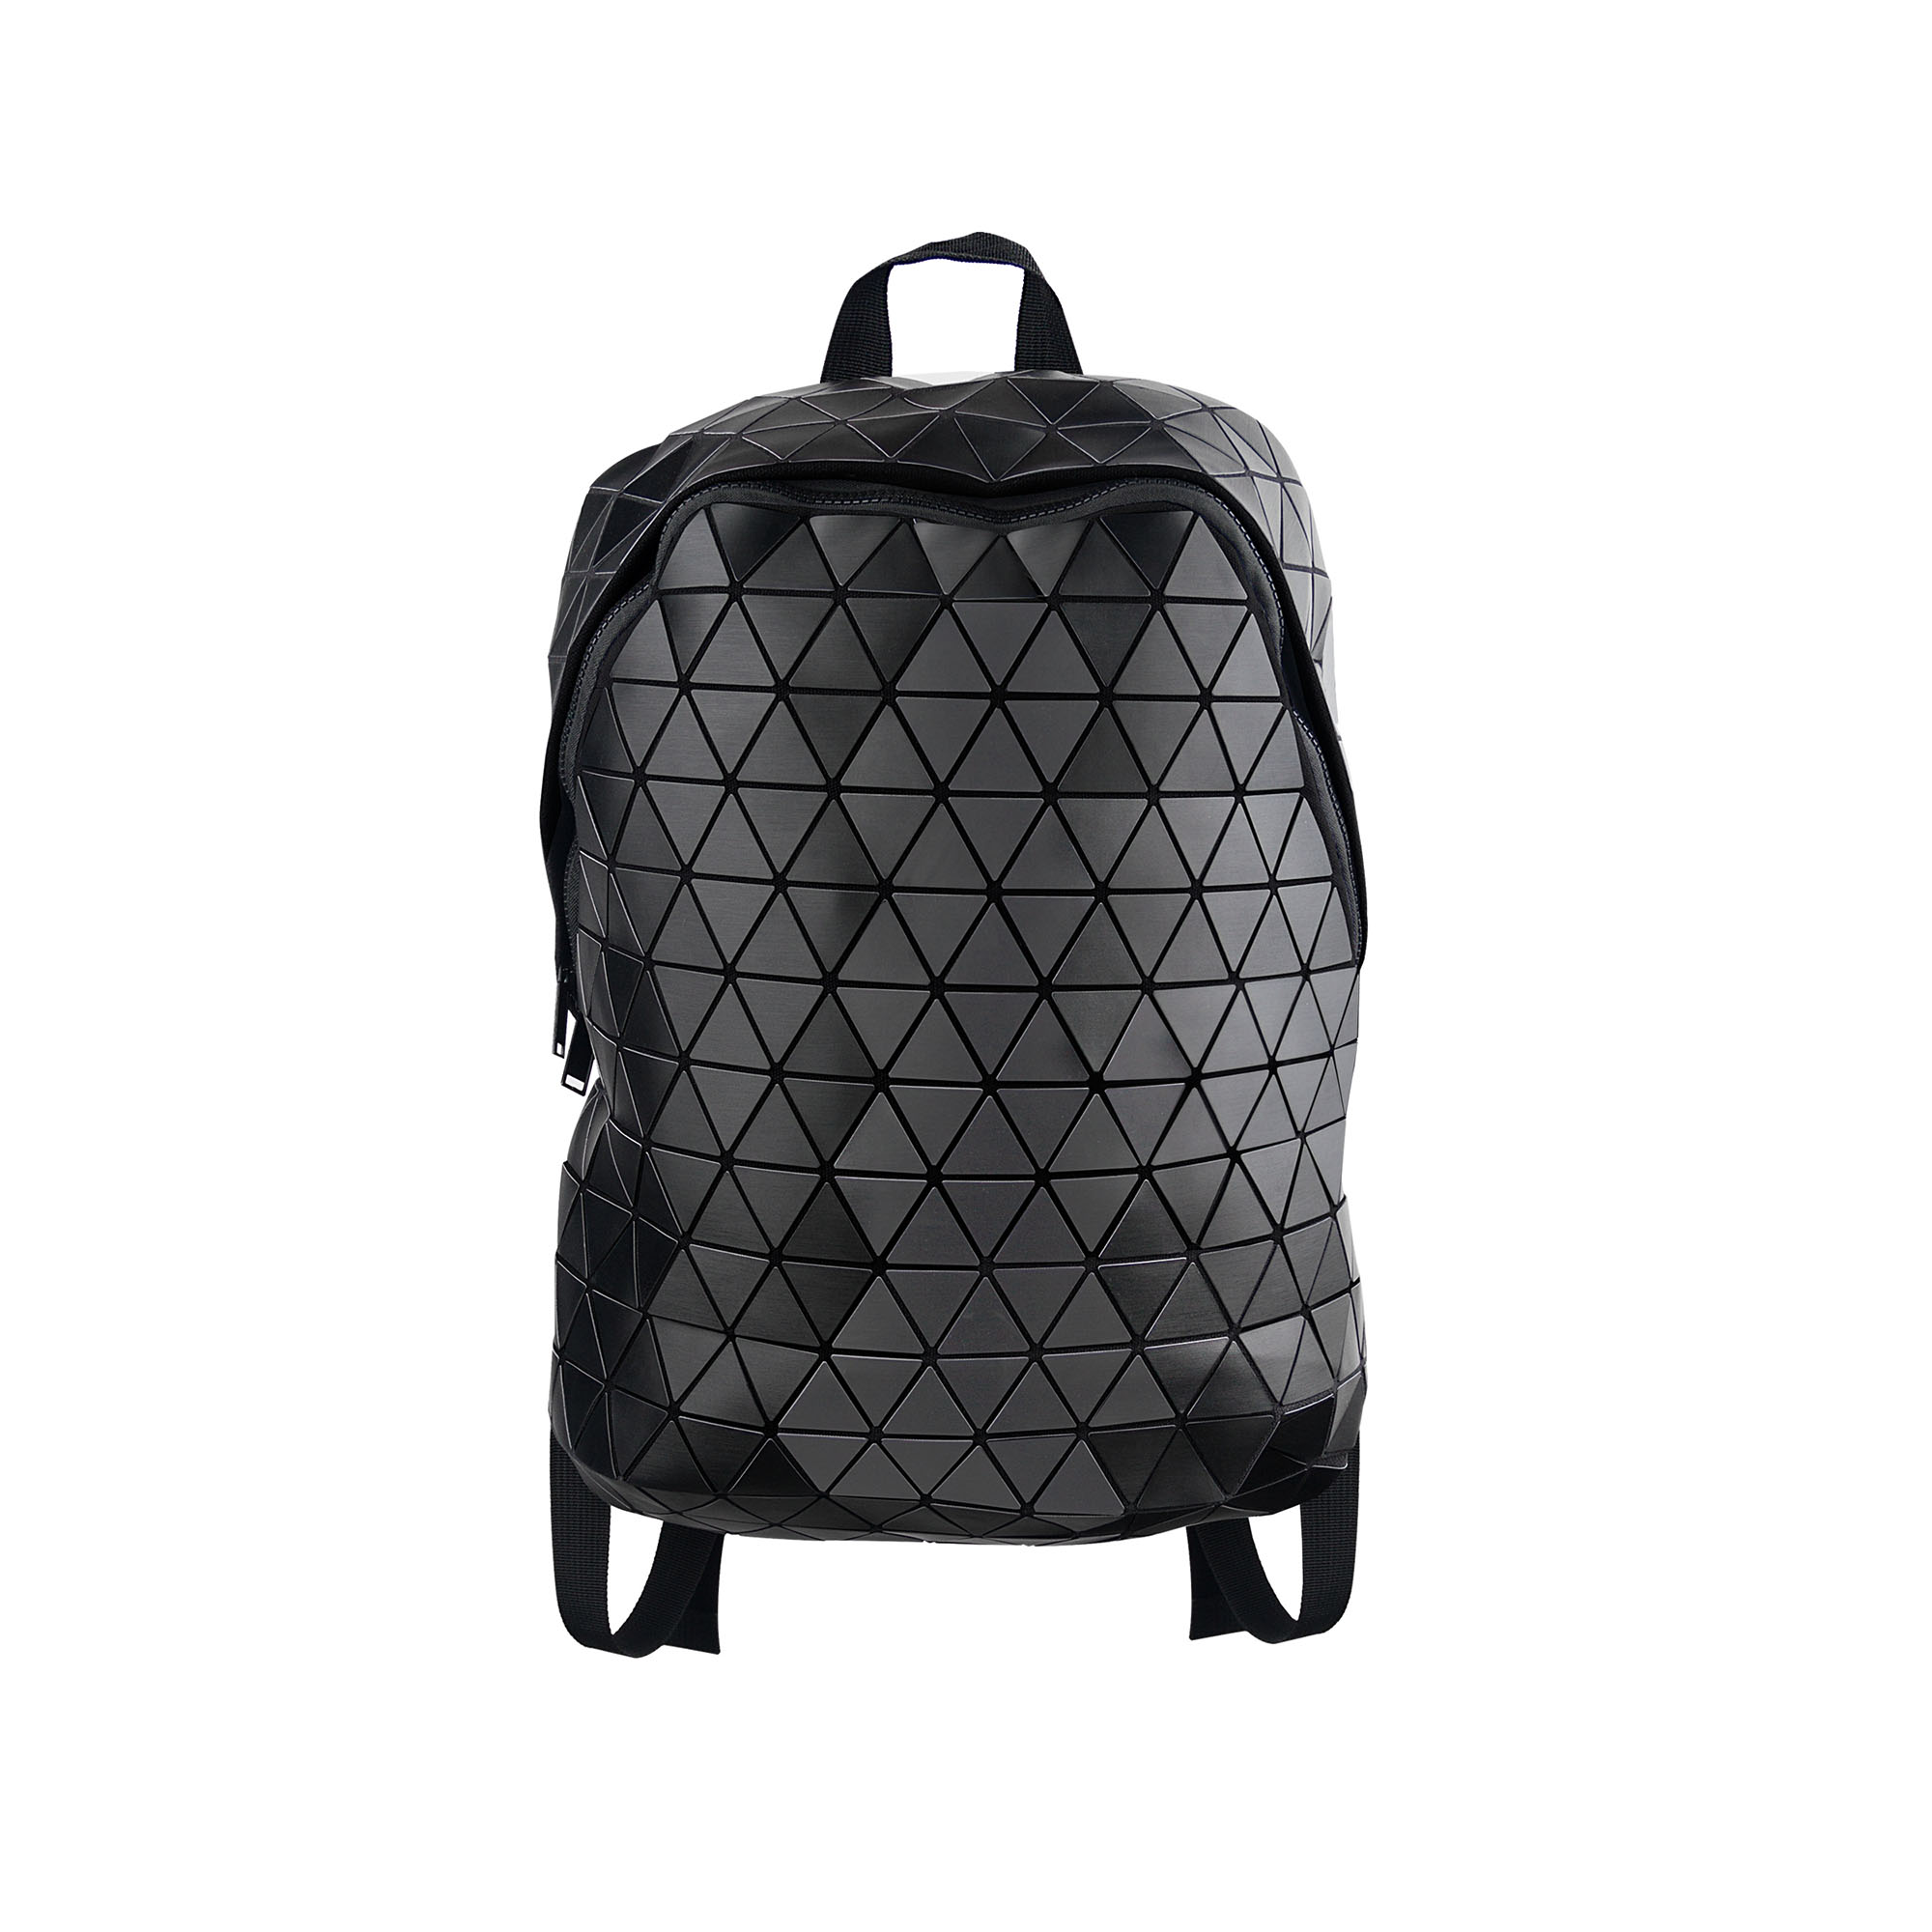 Mybag Prisma Black